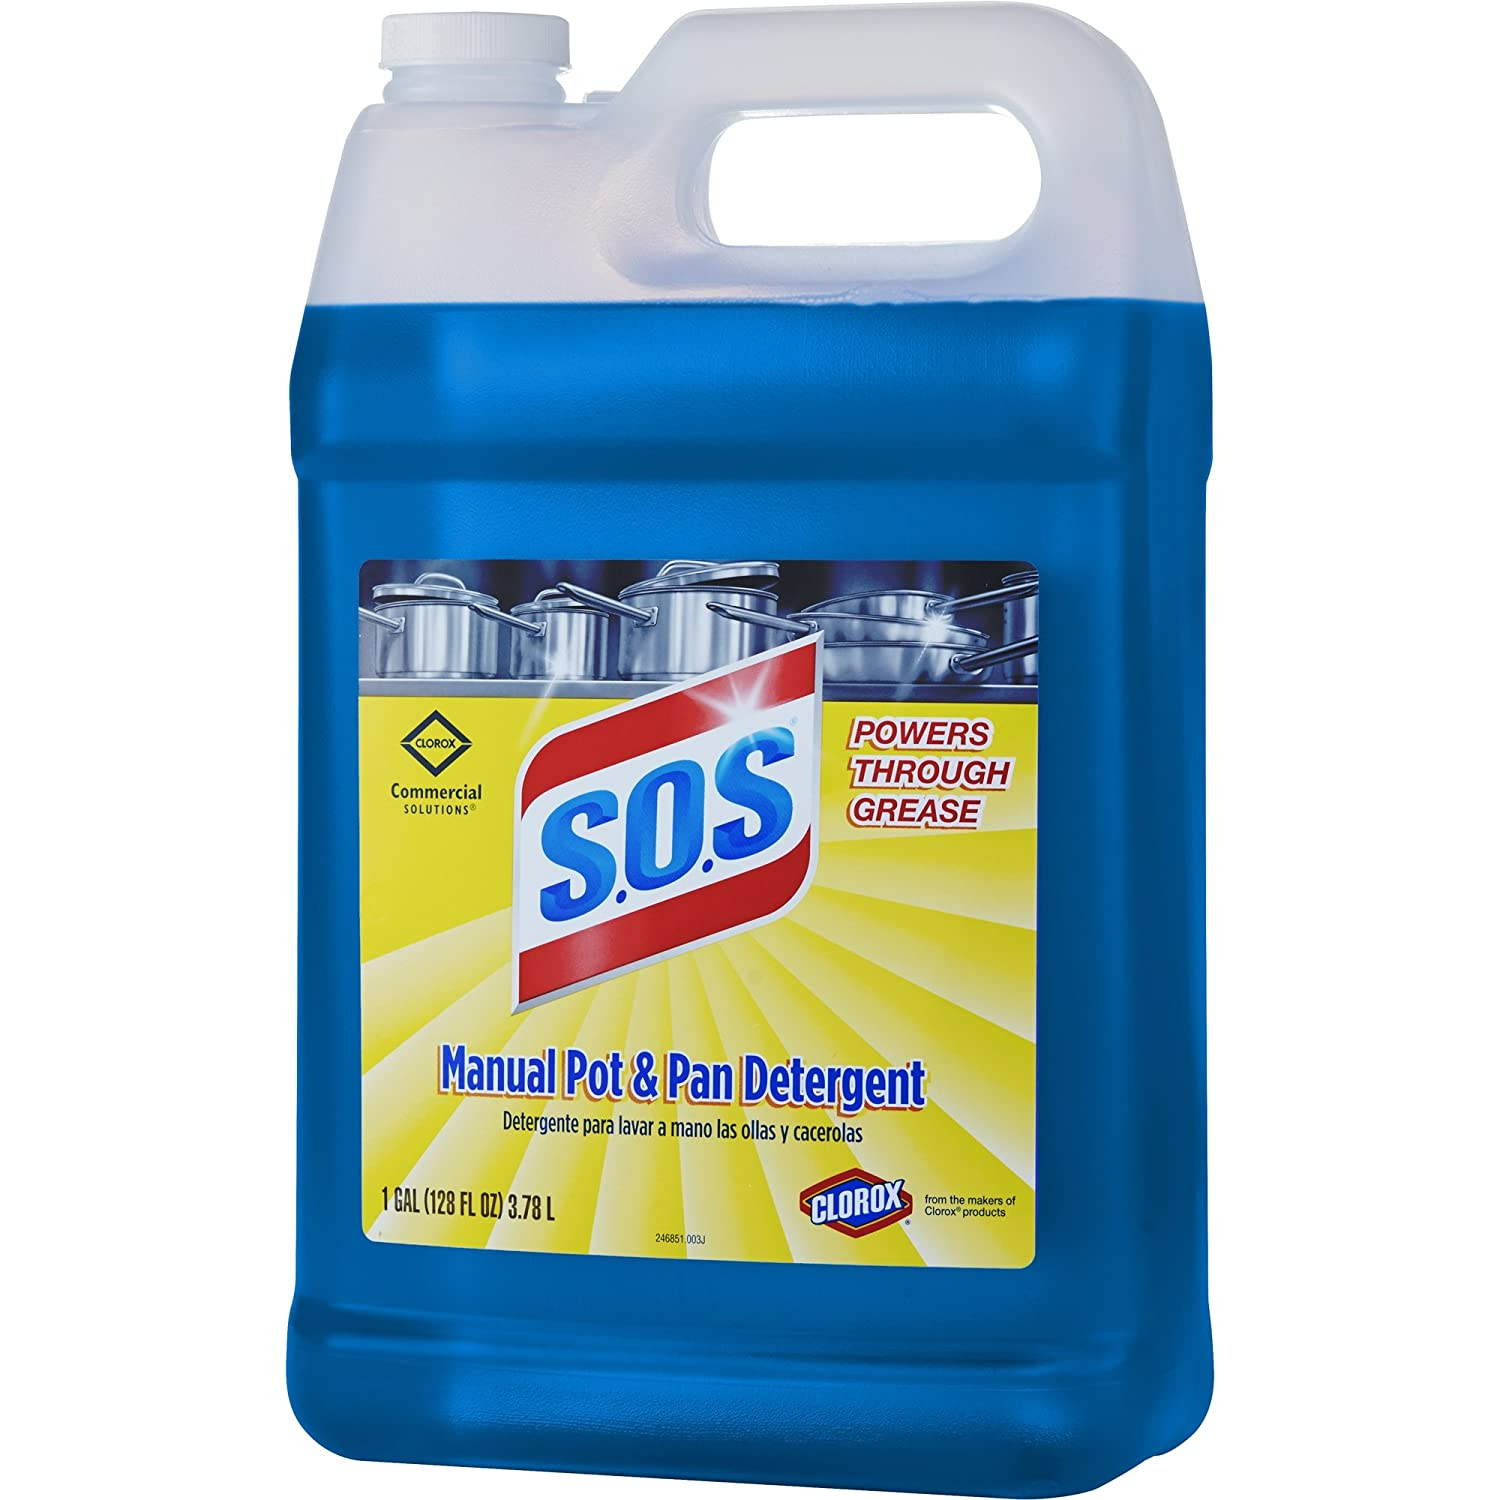 S.O.S Manual Pot and Pan Detergent Liquid, 128 Ounces (31742): Amazon.com: Industrial & Scientific